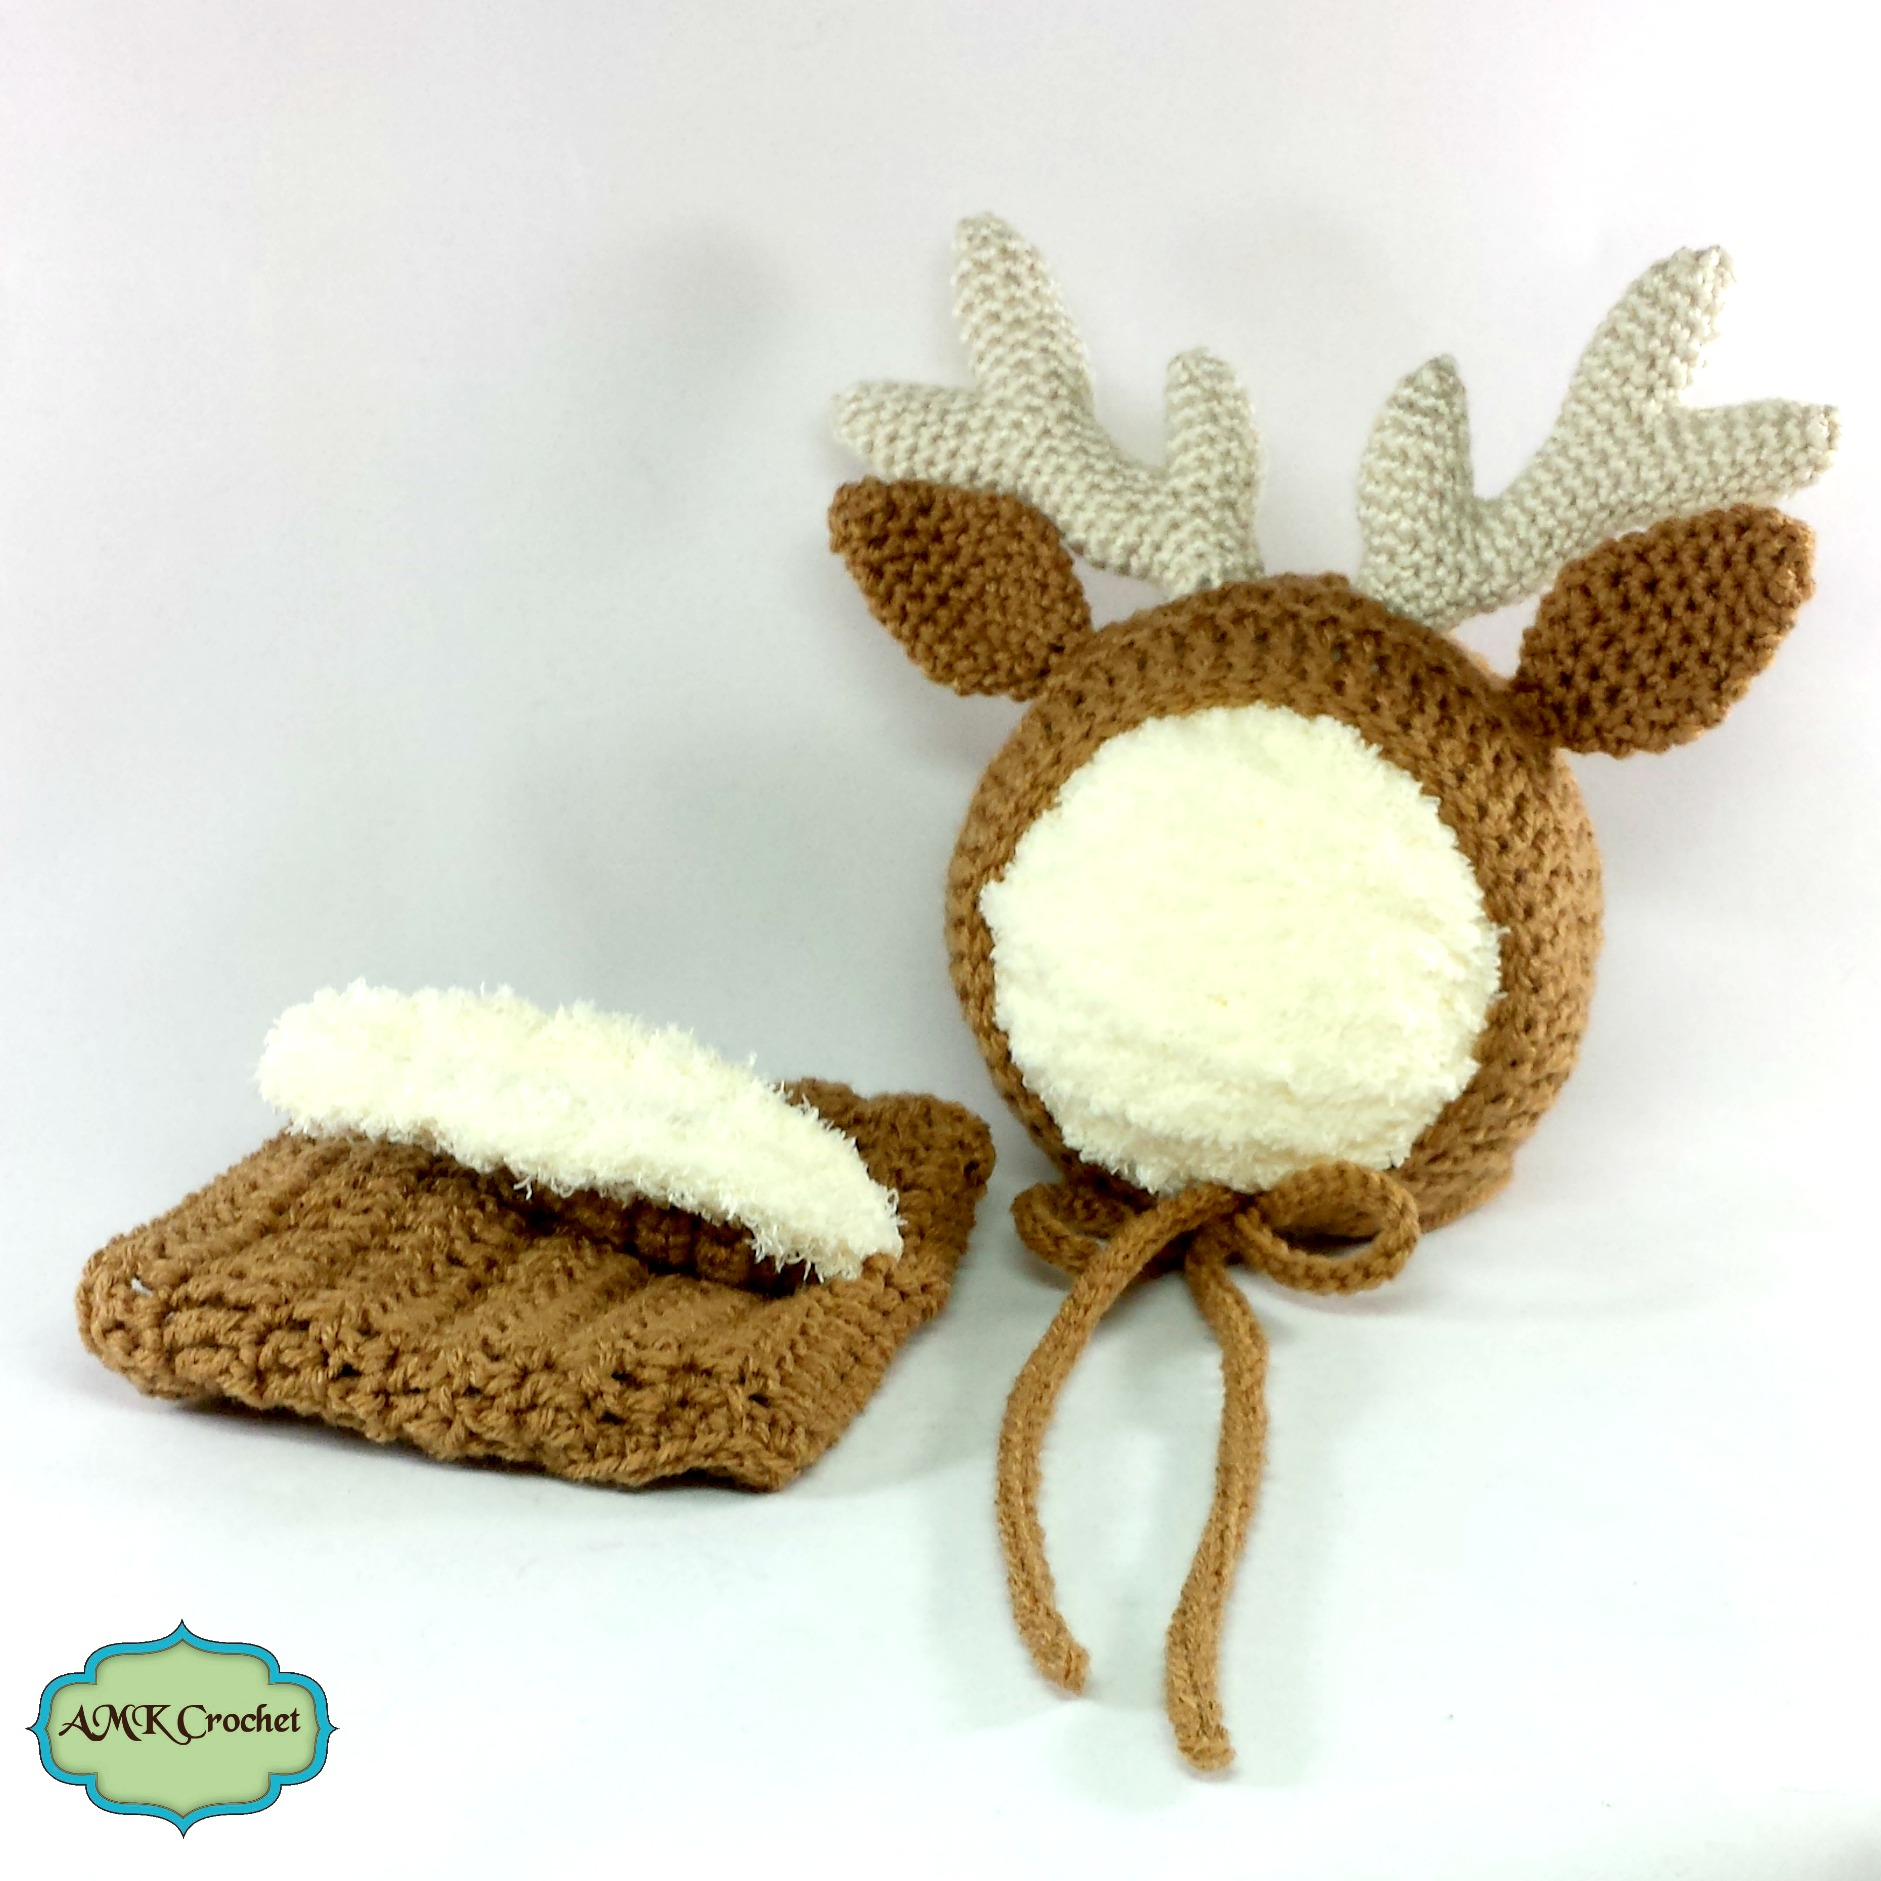 2cc16848b Newborn Deer Hat and Diaper Cover, Deer or Reindeer Outfit, Photo ...